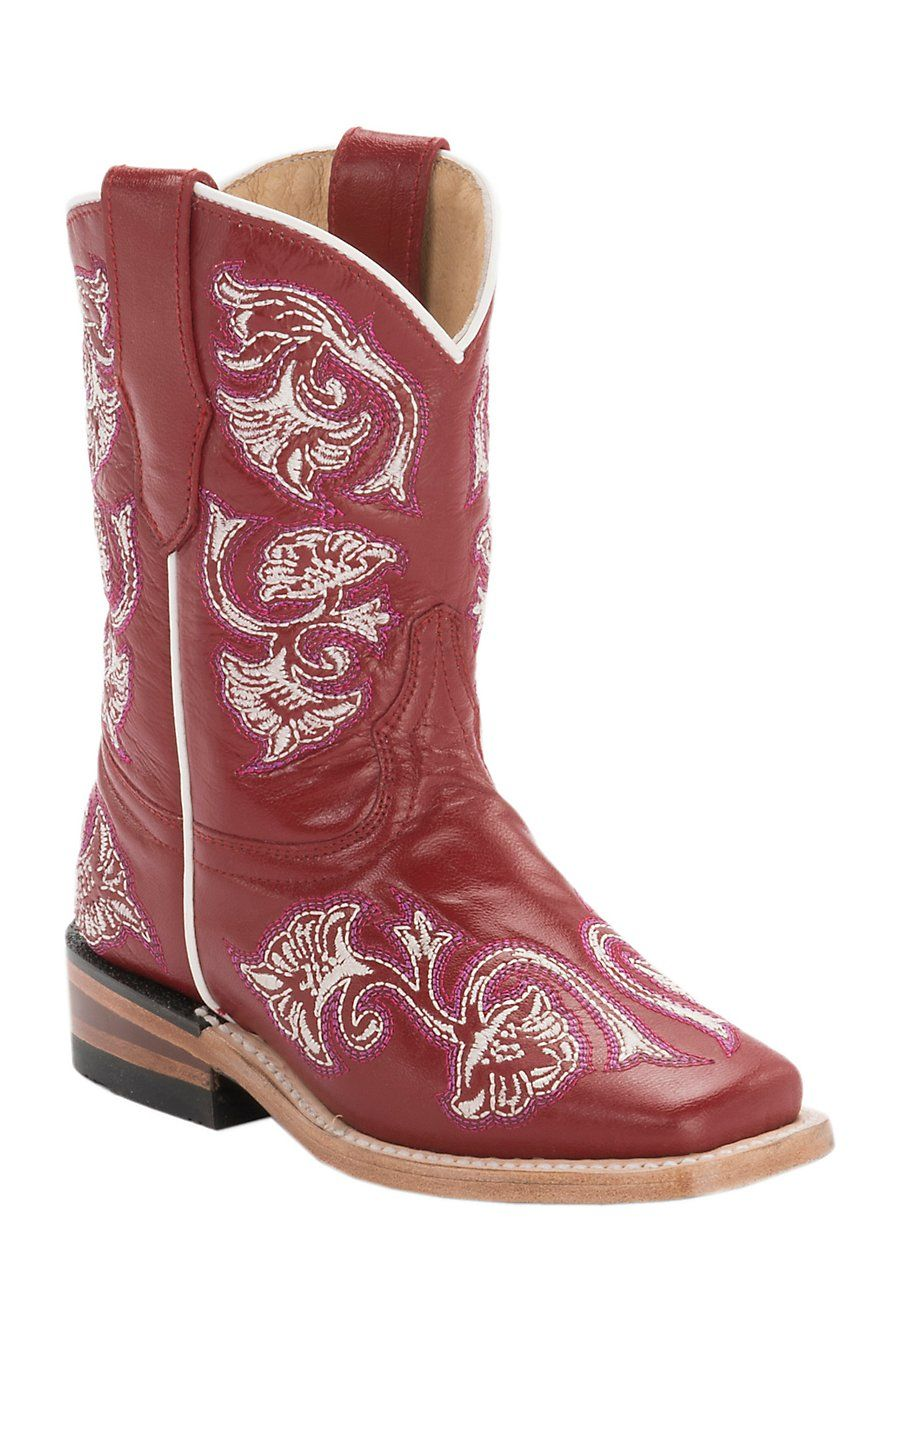 e830a50012a Corral Kid's Red Fancy Stitch Square Toe Western Boots | Corral ...